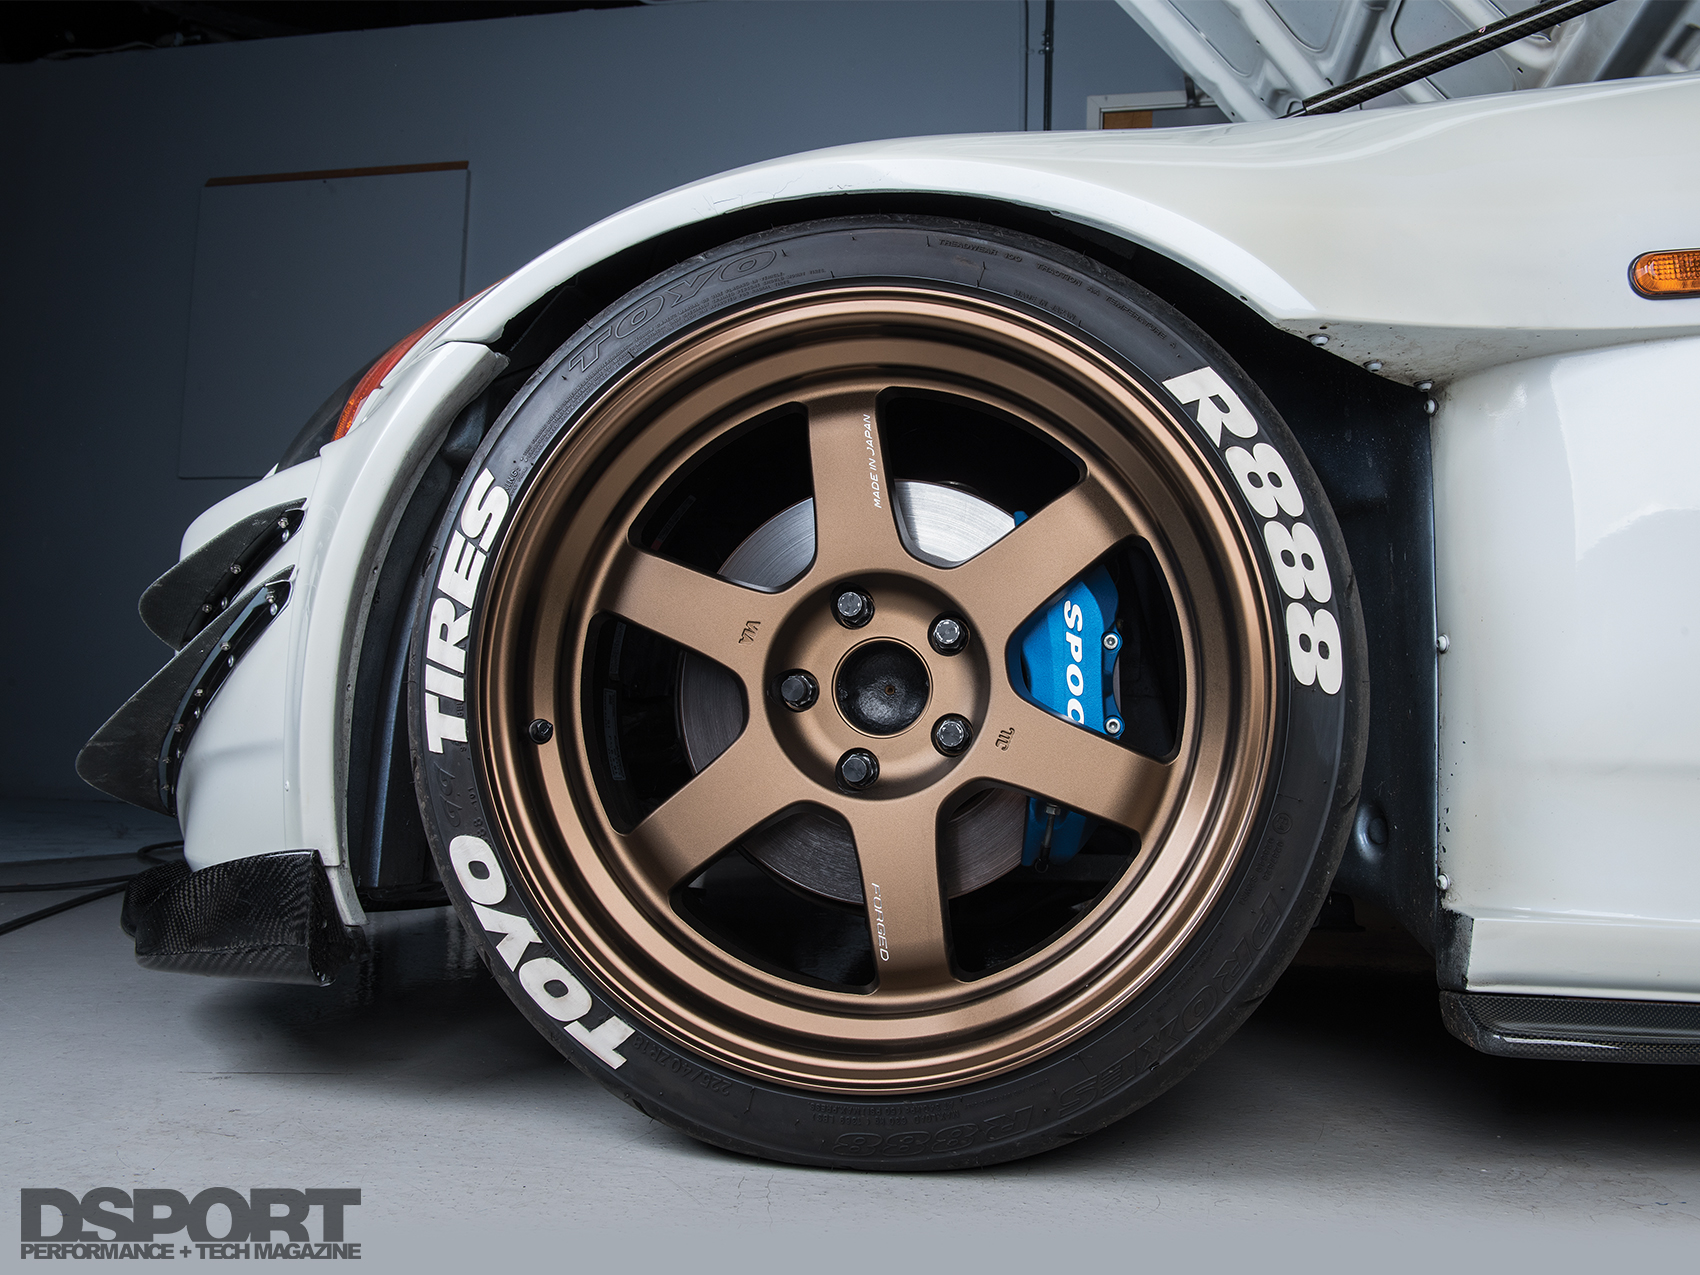 440 WHP Turbocharged Honda S2000 - Page 2 of 2 - DSPORT Magazine